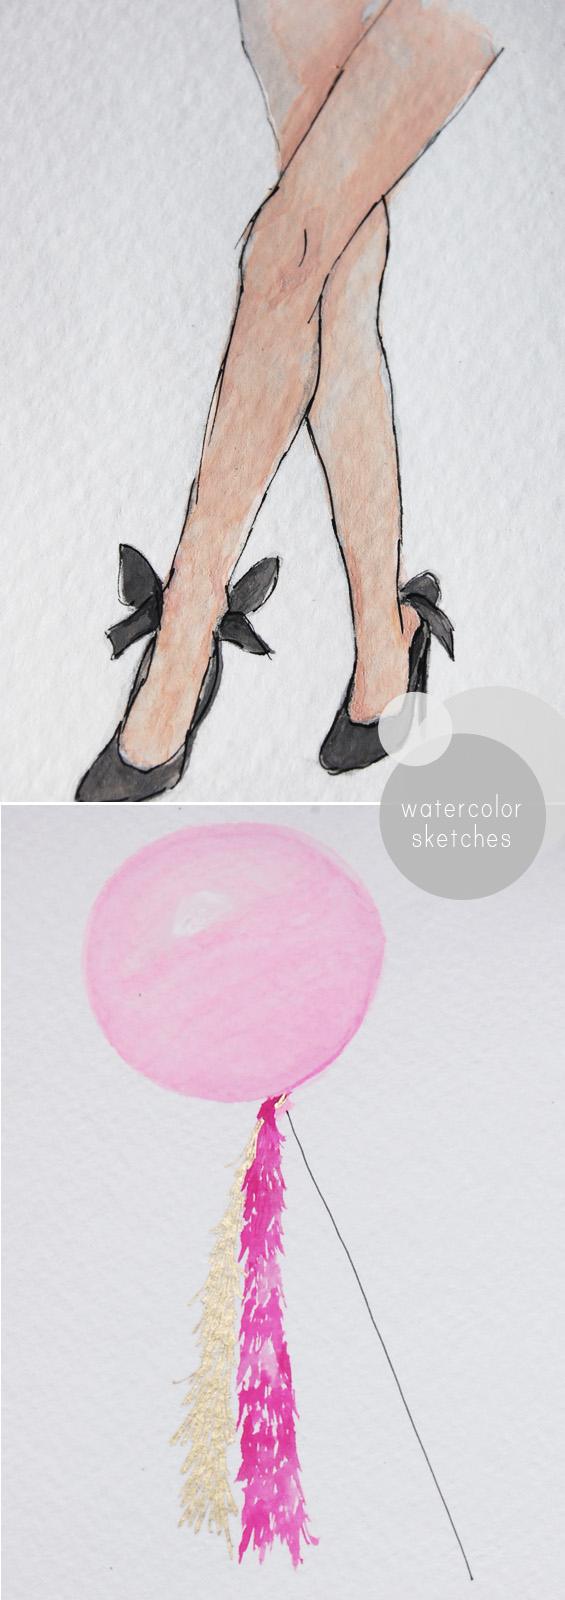 water color fashion sketch illustration legs